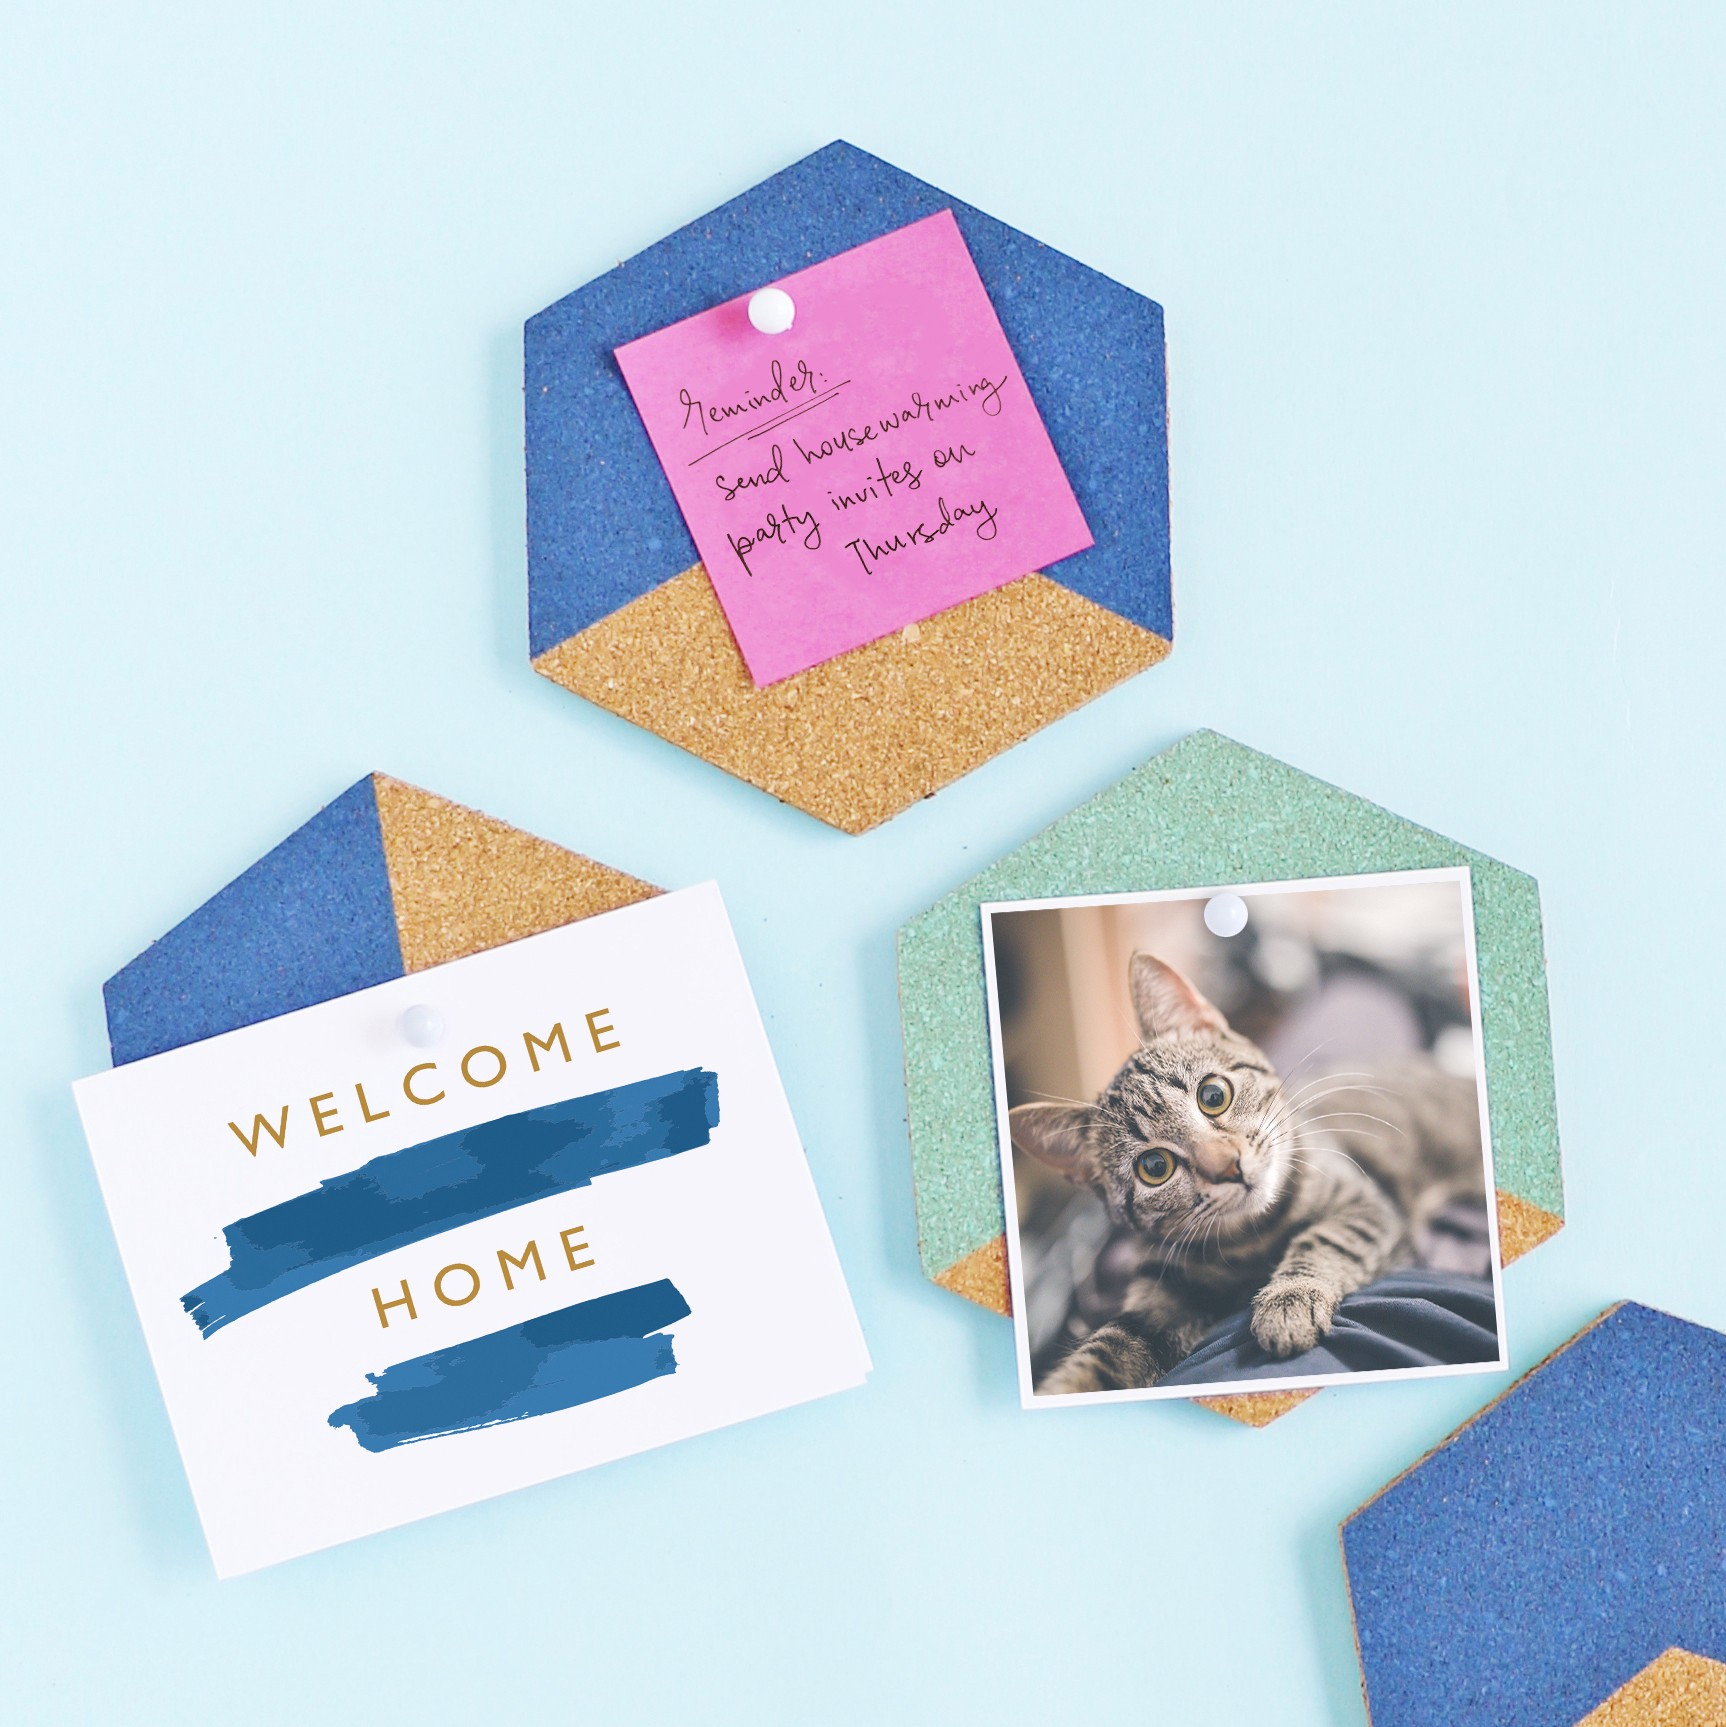 6 Housewarming Card Message Ideas | by Punkpost | Punkpost | Medium